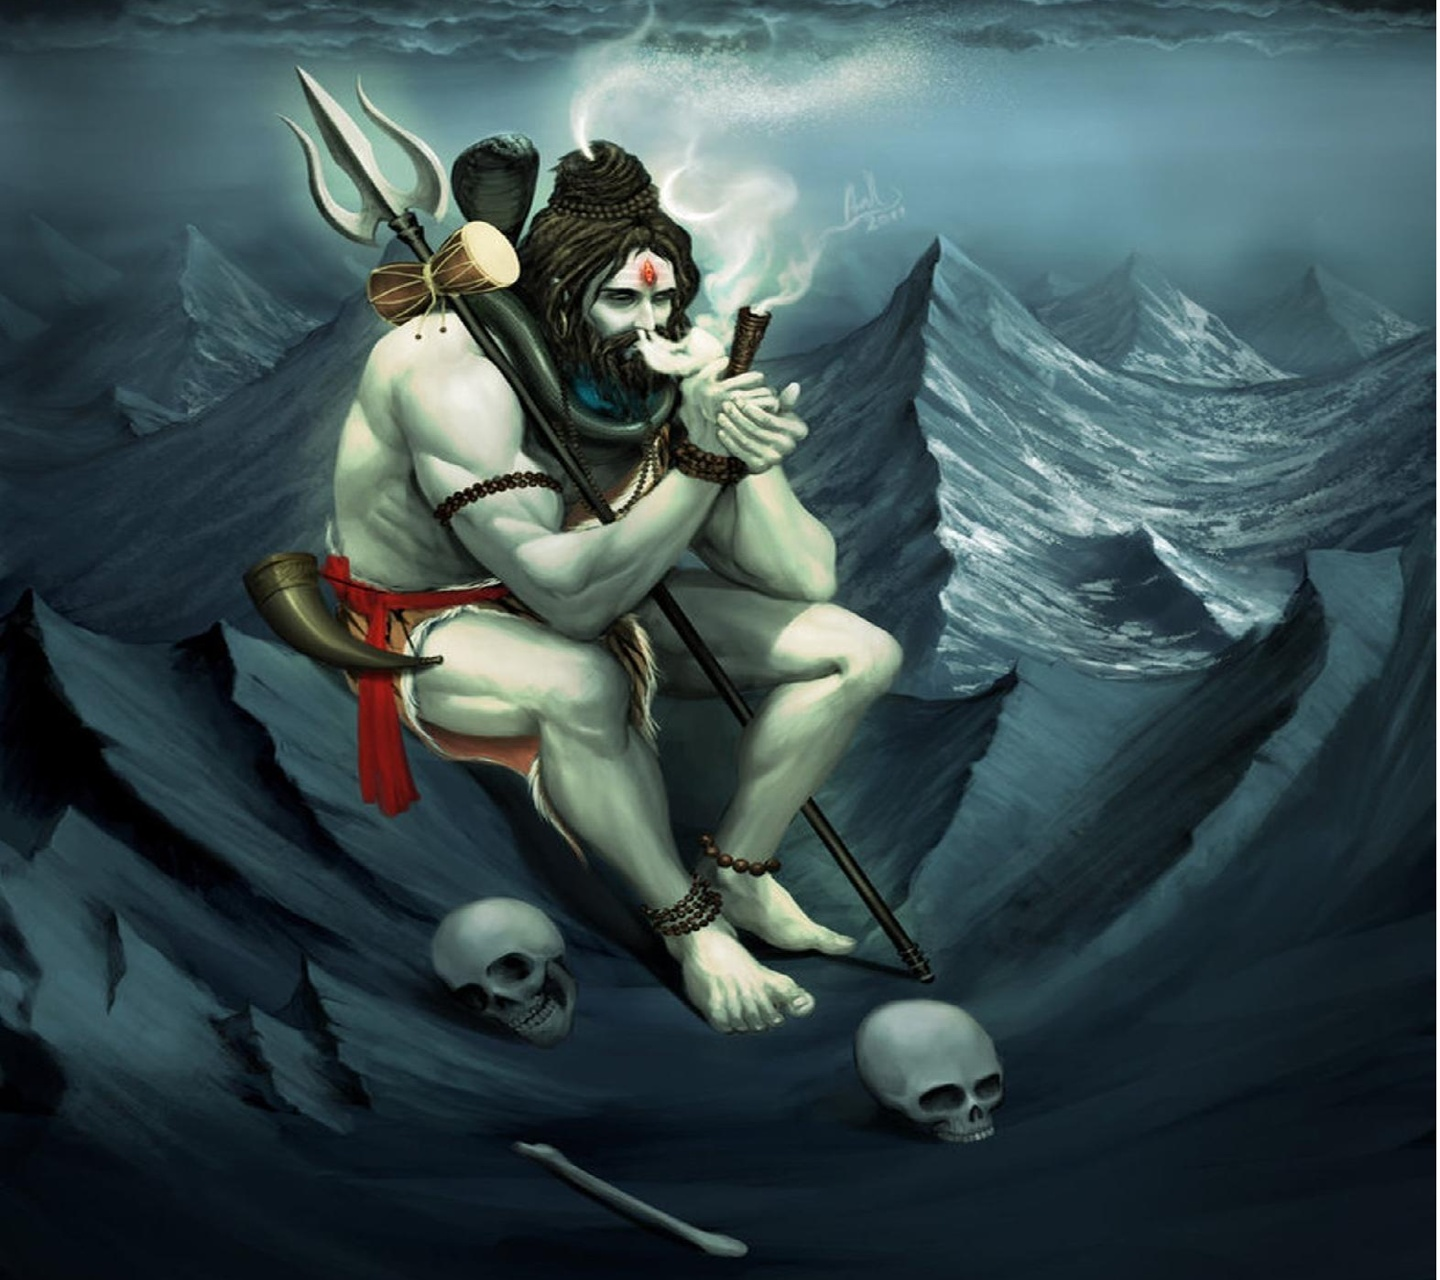 Lord Shiva Wallpapers, HD Images, Photos, Pictures Free